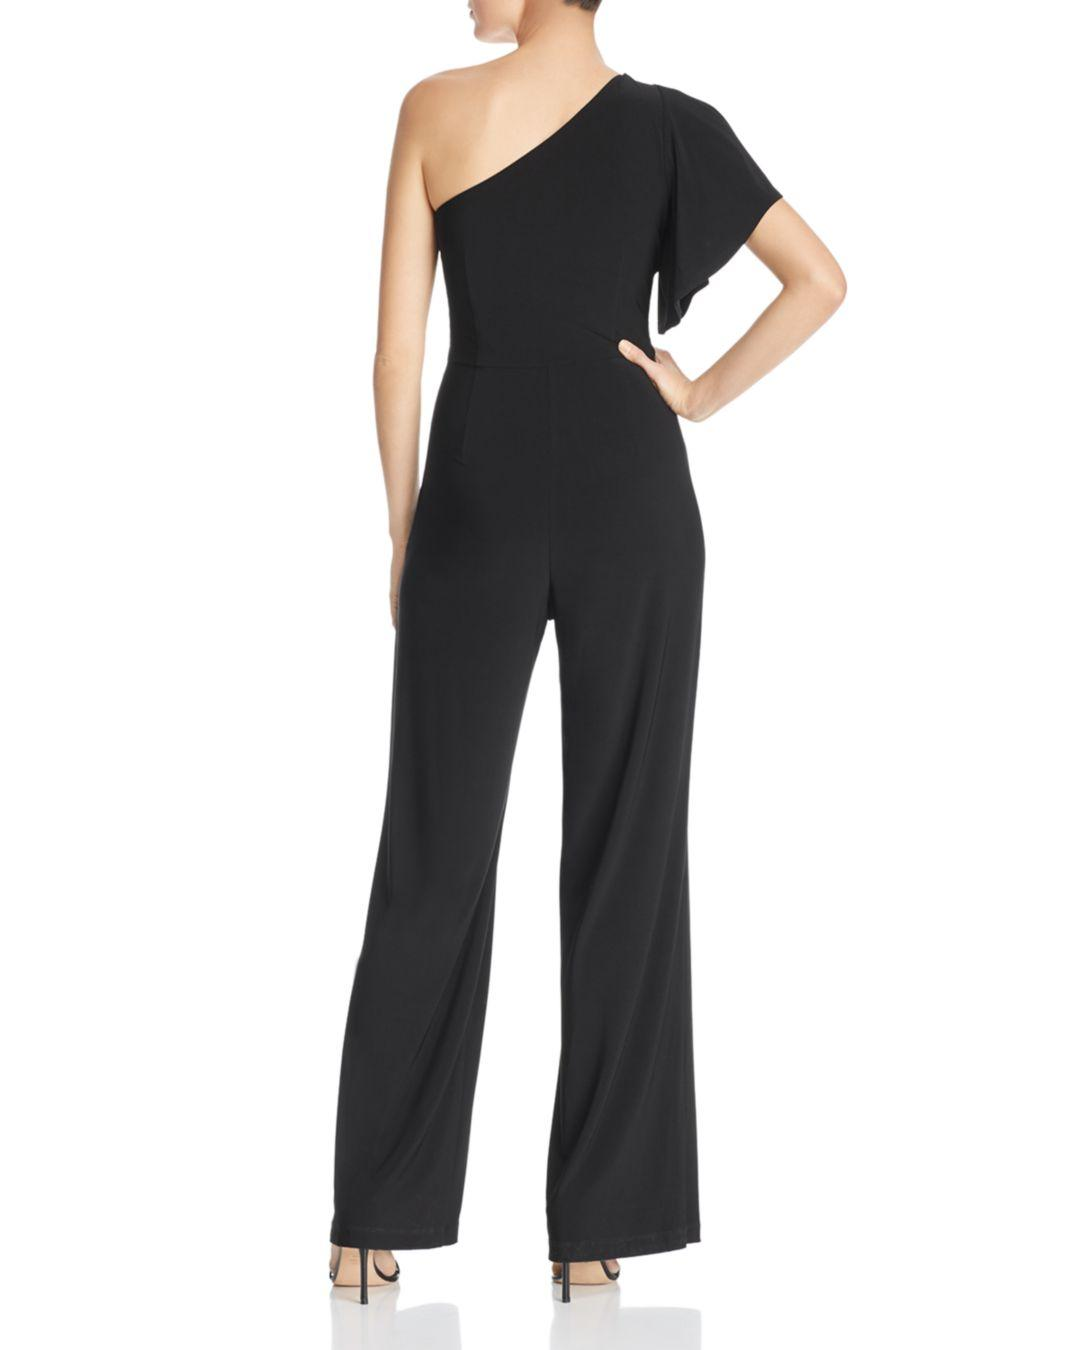 742c9311696 Lyst - Laundry by Shelli Segal One-shoulder Jumpsuit in Black